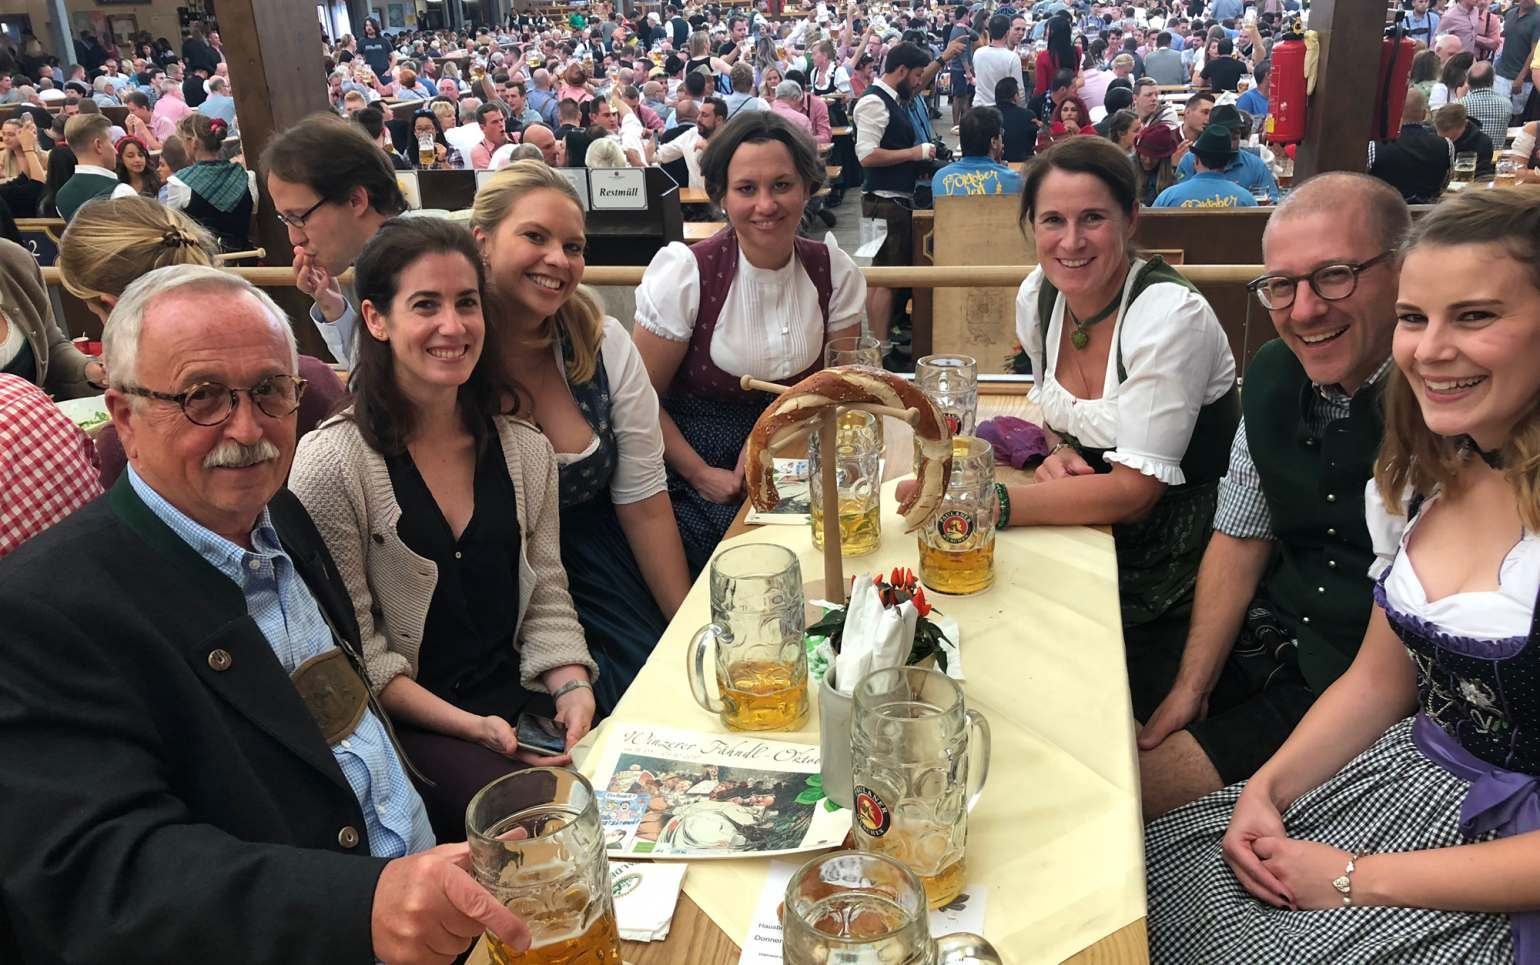 fritsch-tschaidse_architekten_Wiesn_03